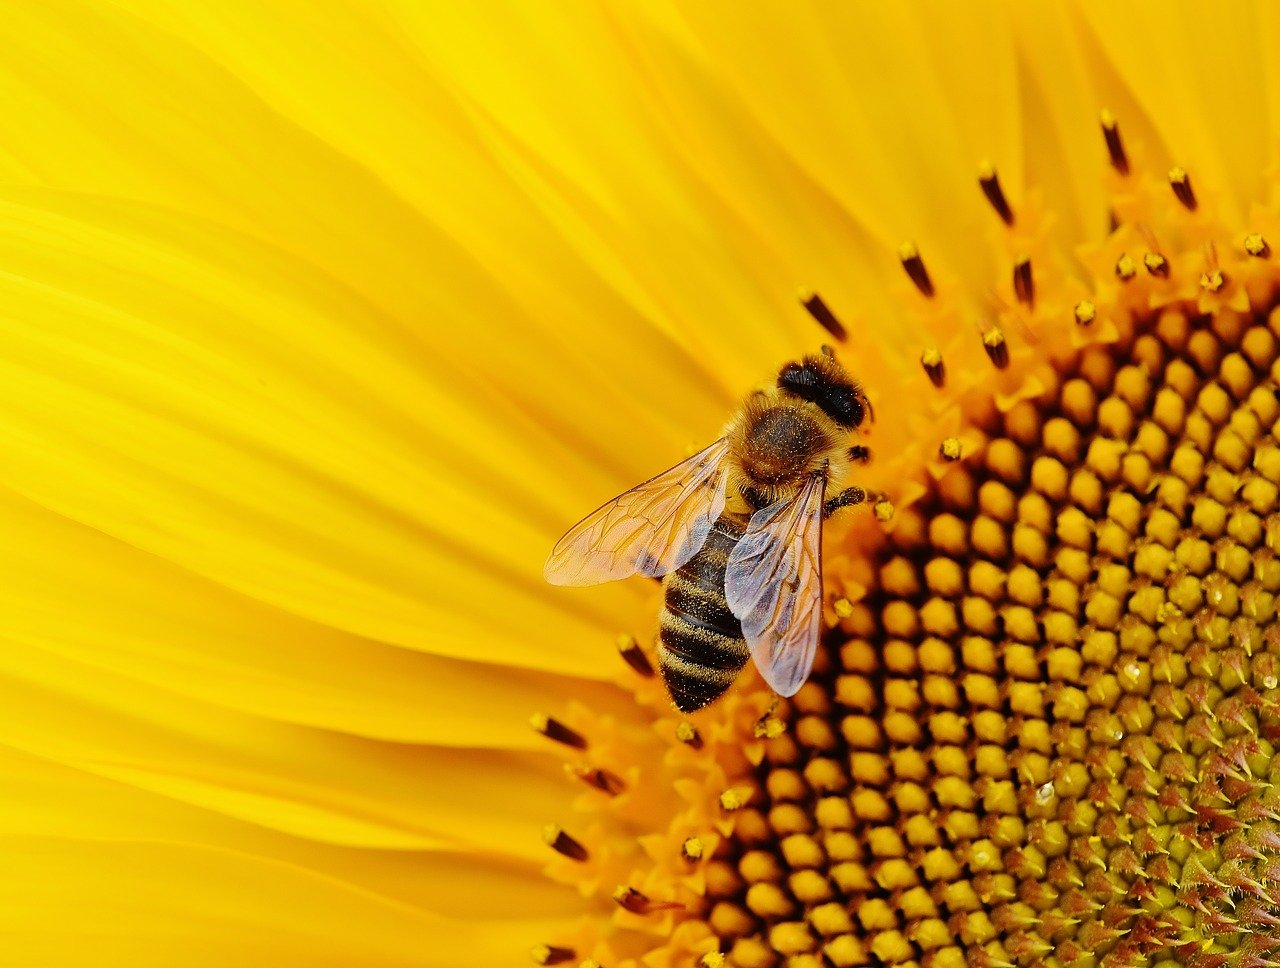 Bees are involved in the disappearance of insects